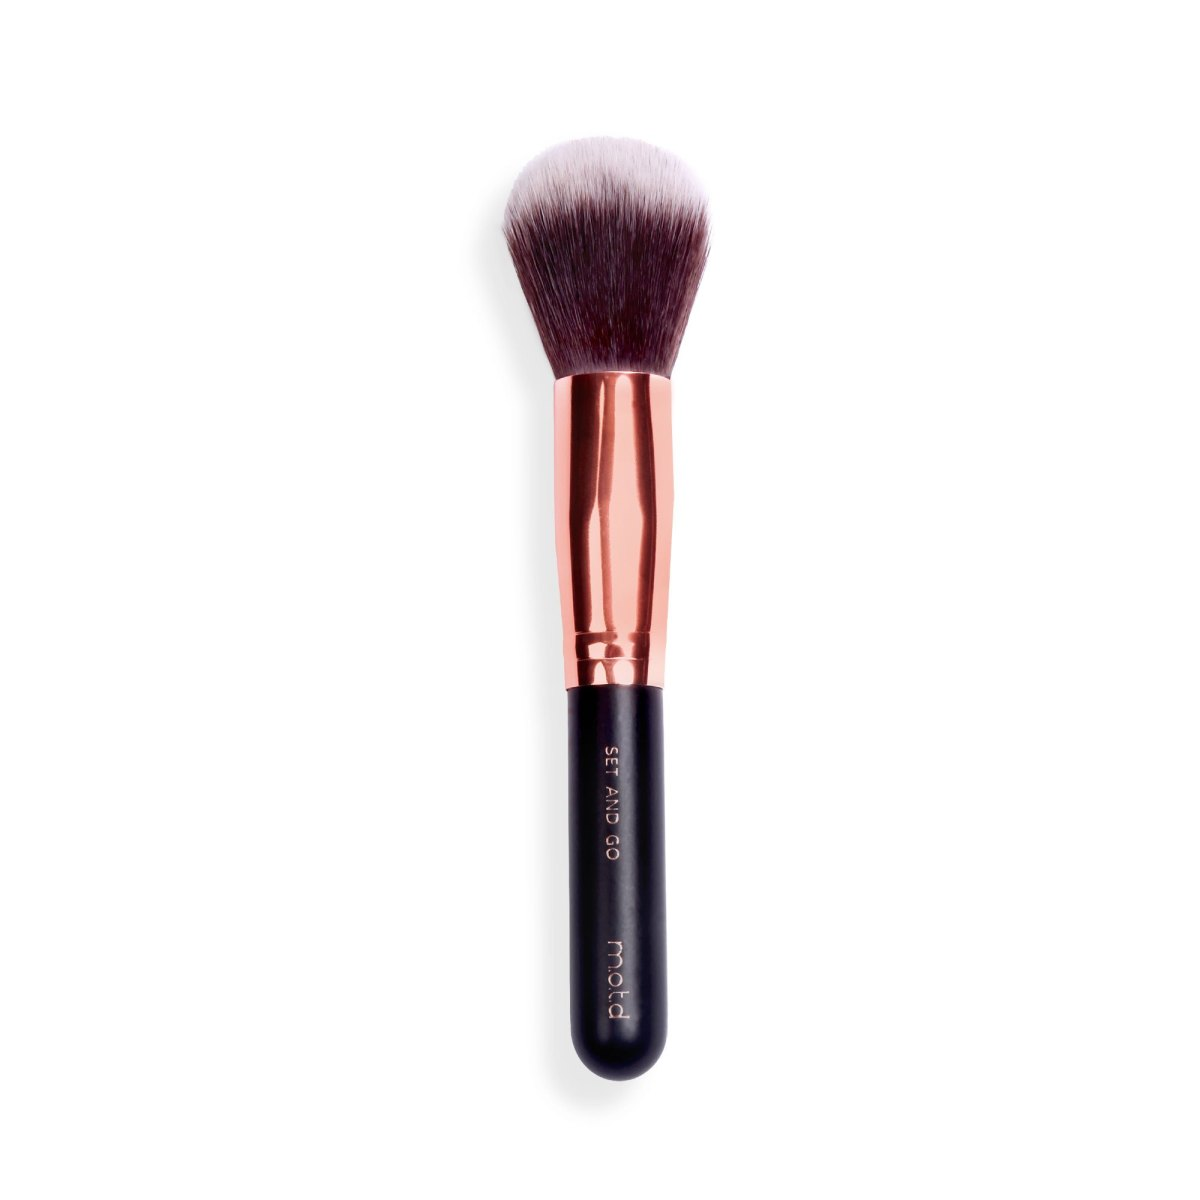 Set and Go MOTD Cosmetics Vegan Makeup Brushes